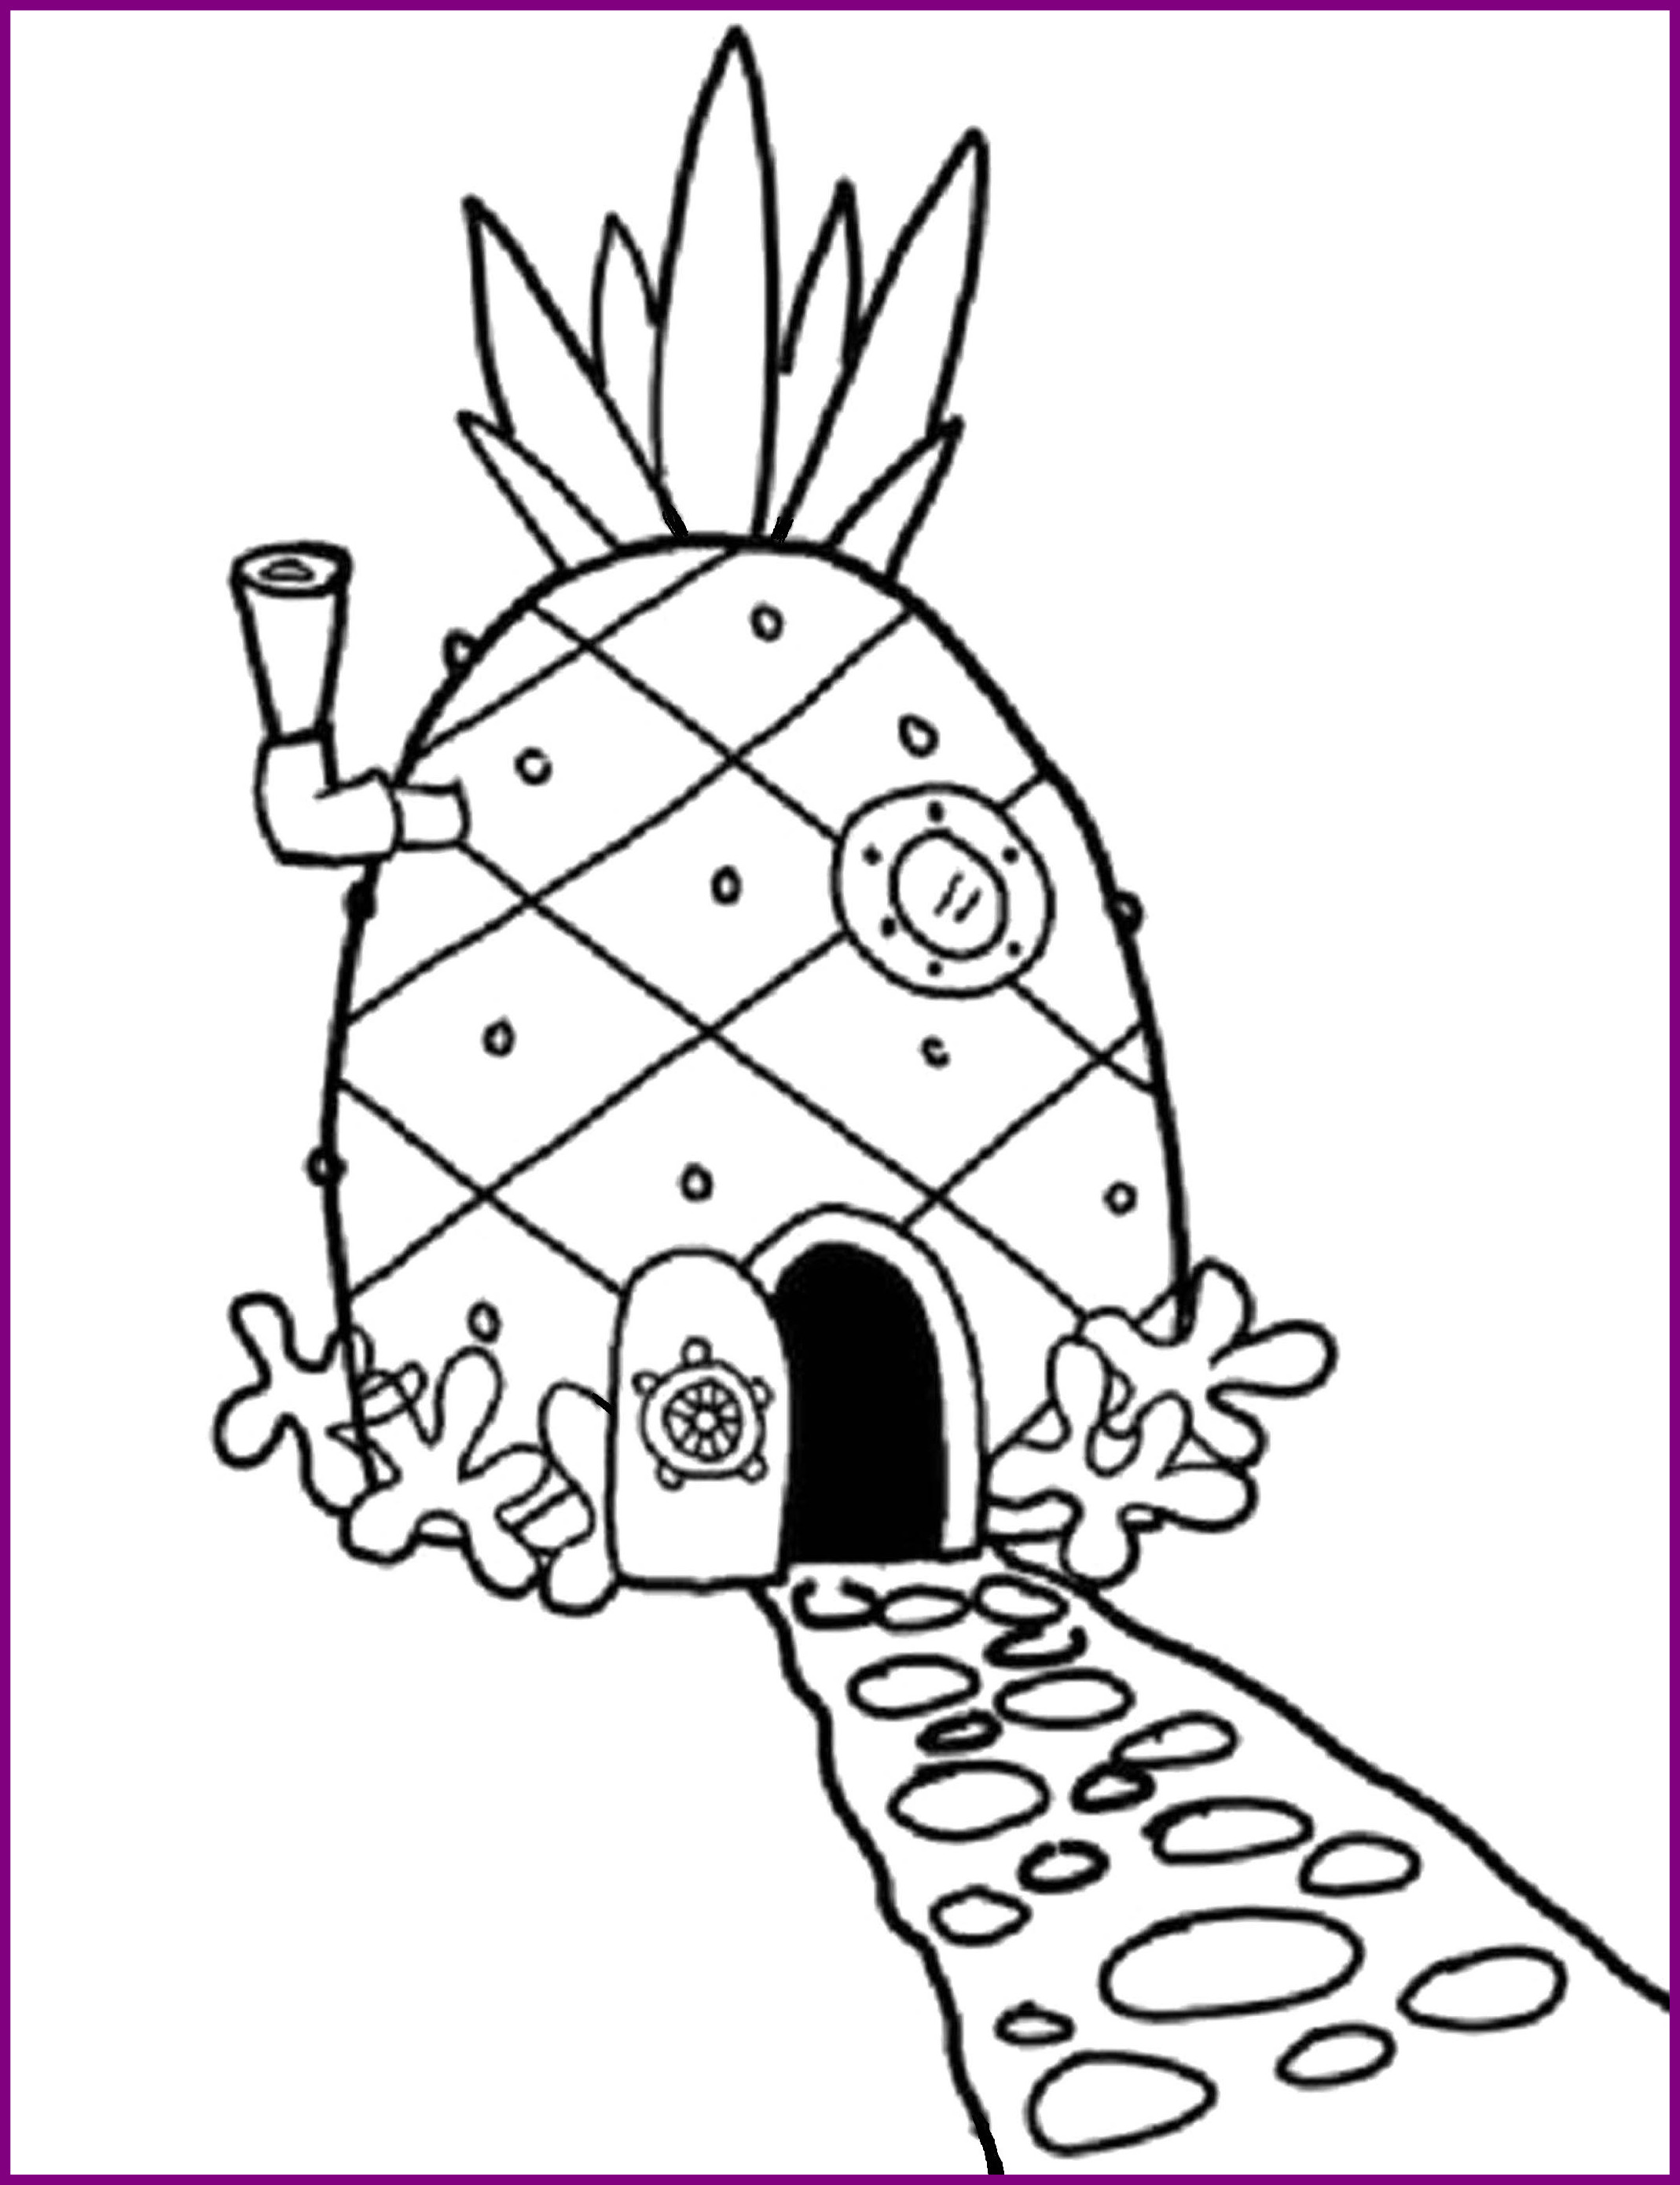 Giant Squid Coloring Page At Getcolorings